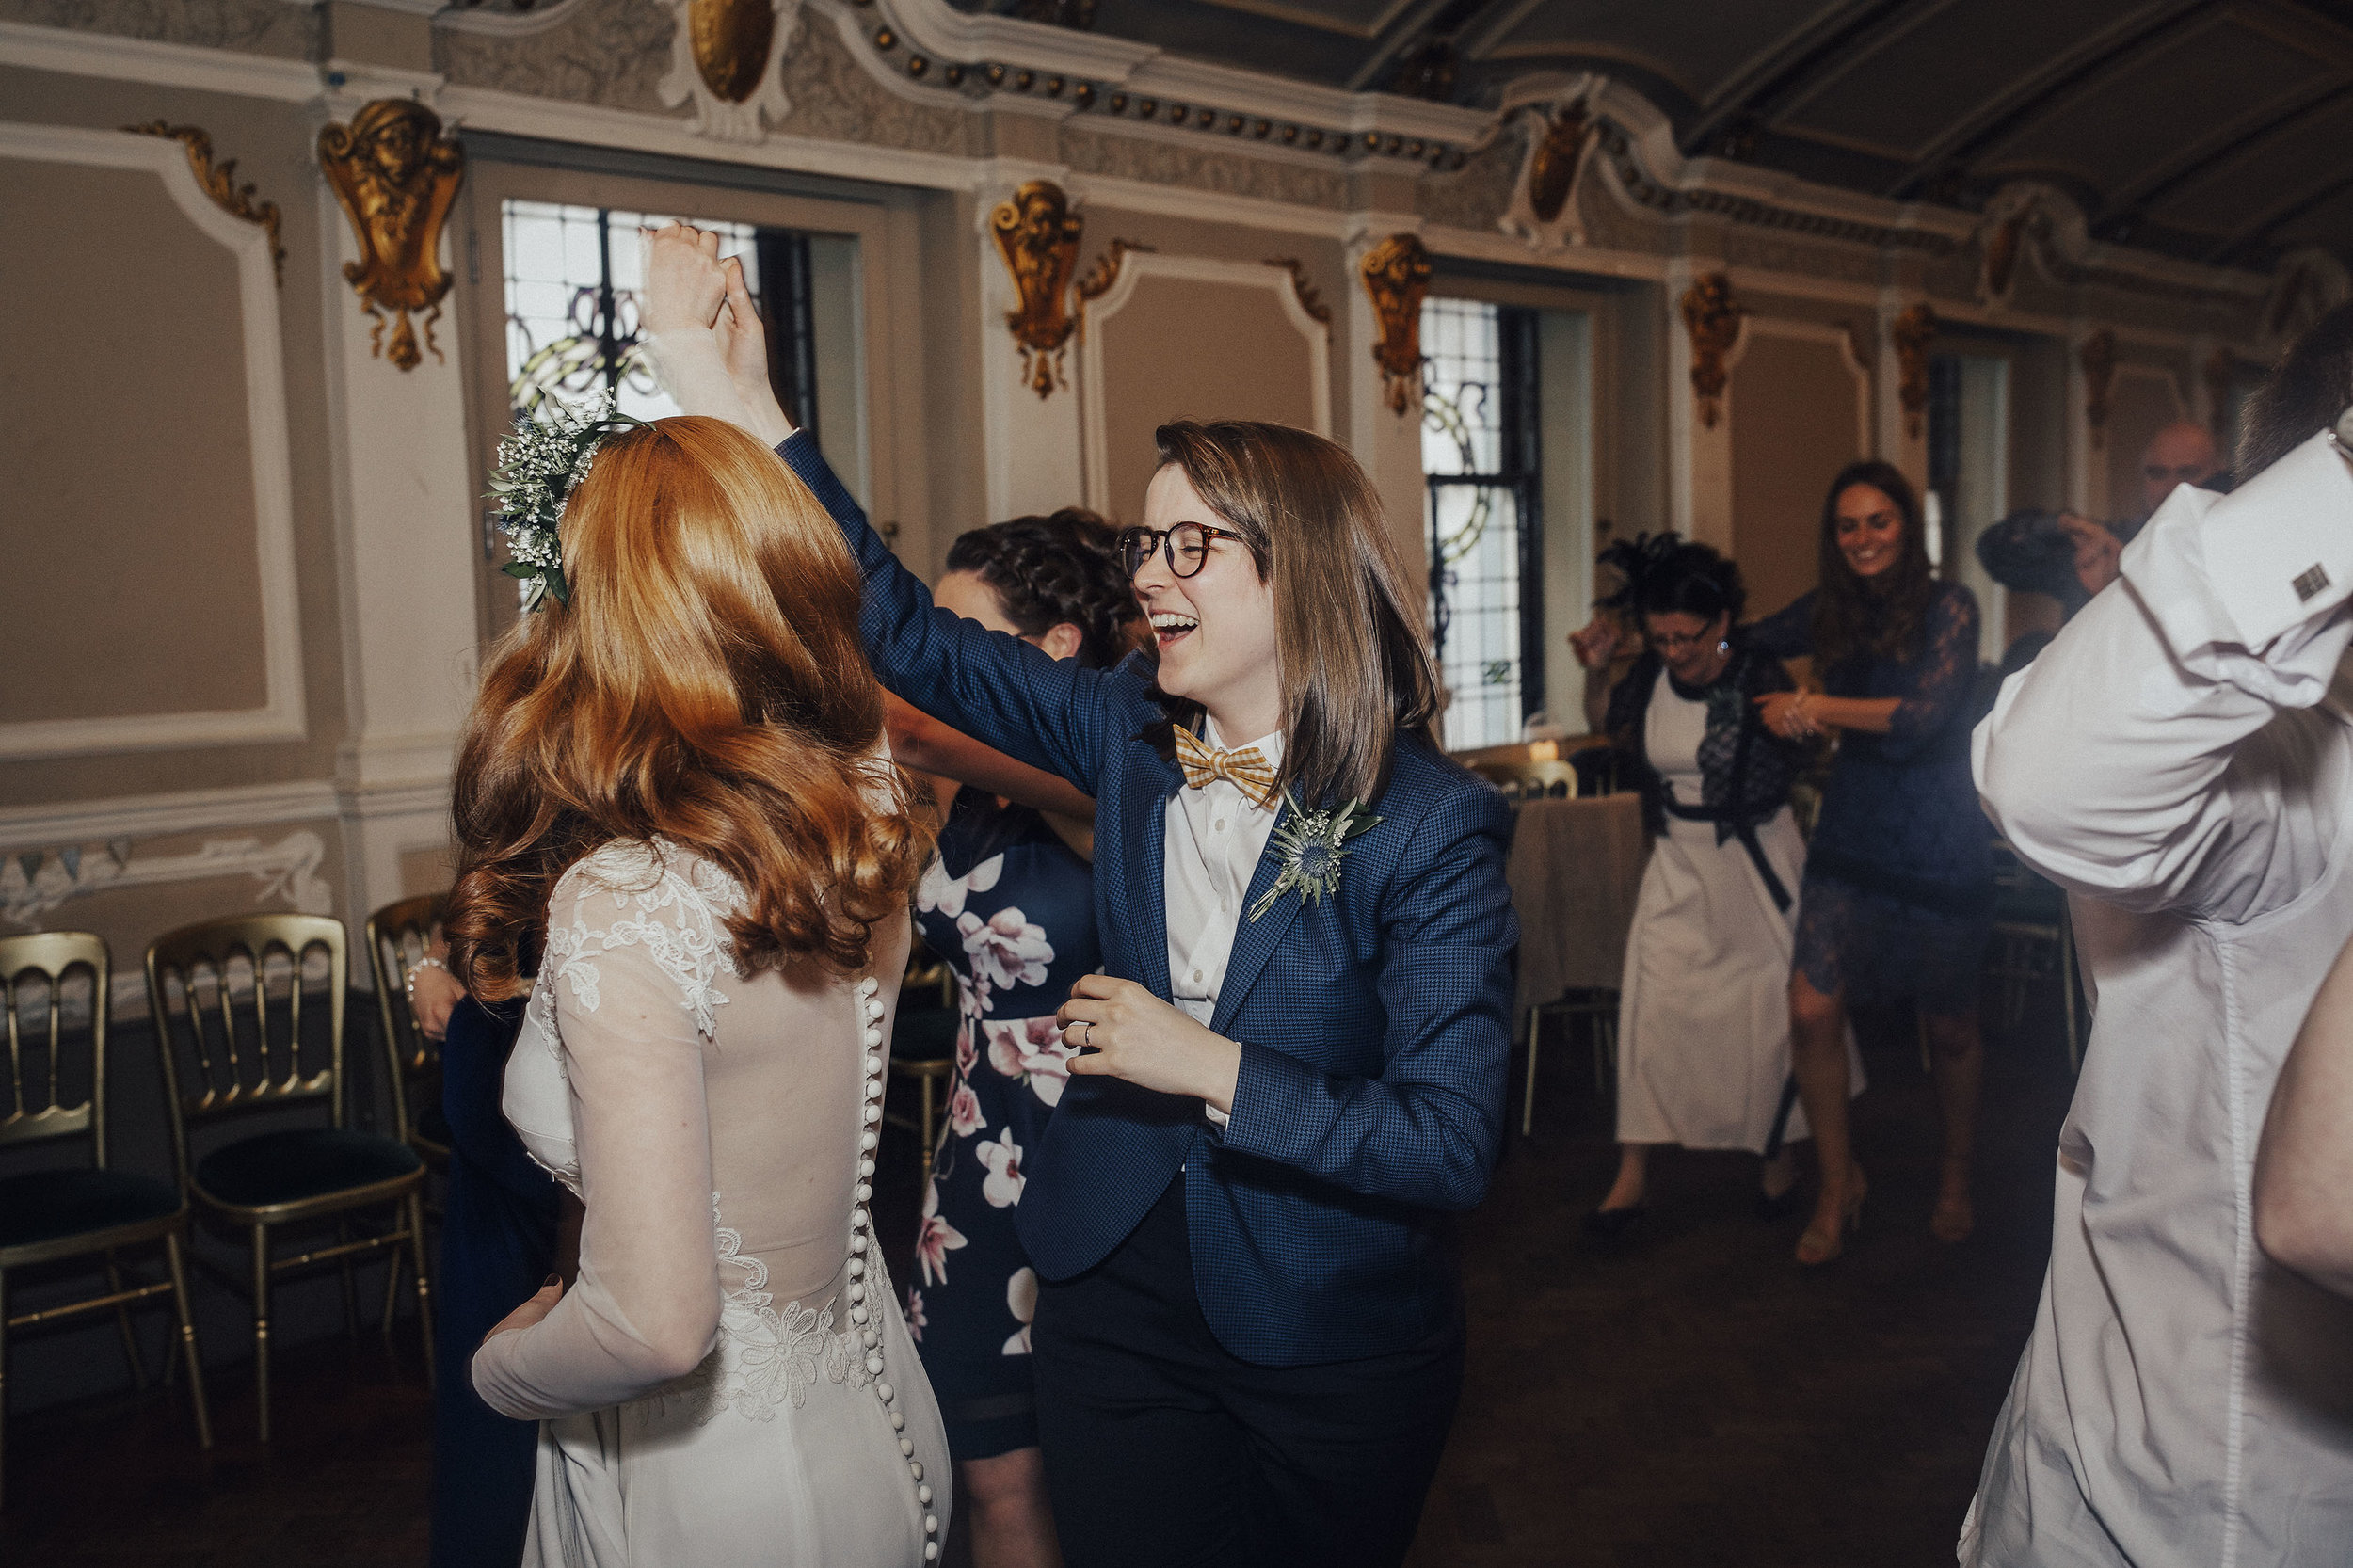 SAME_SEX_WEDDING_PHOTOGRAPHER_SLOANS_GLASGOW_PJ_PHILLIPS_PHOTOGRAPHY_96.jpg